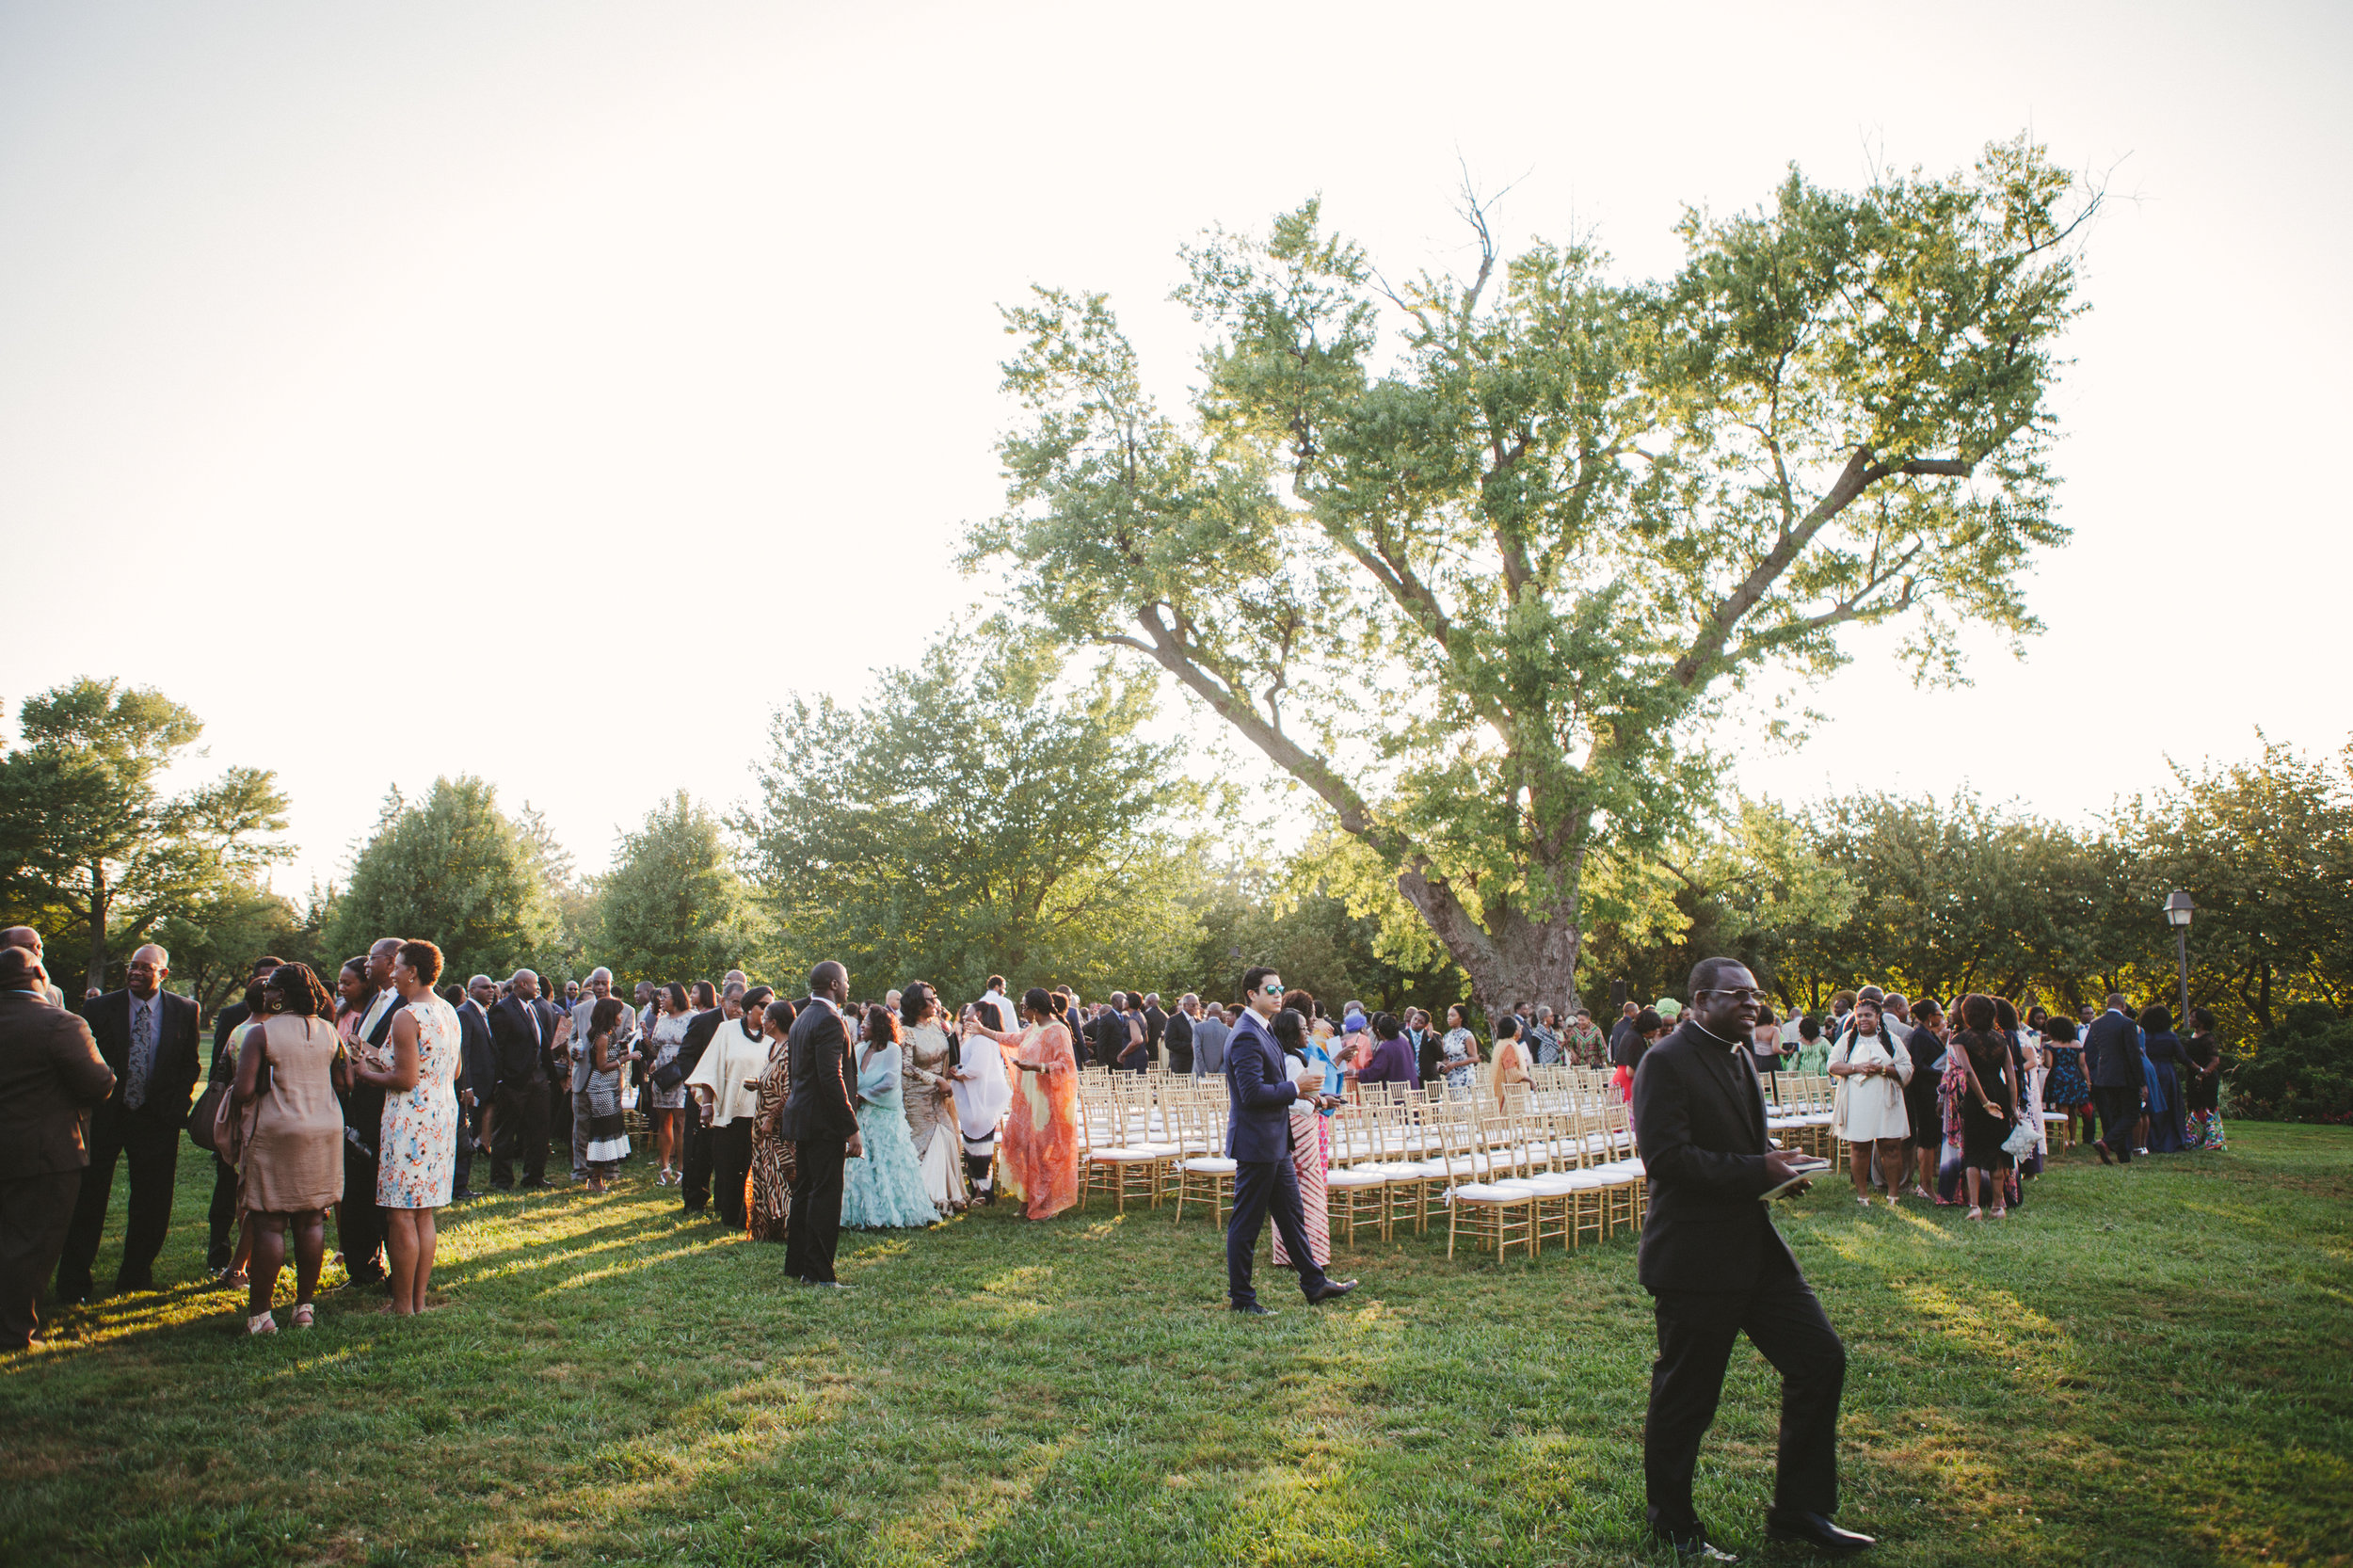 GLENVIEW MANSION WEDDING - INTIMATE WEDDING PHOTOGRAPHER - TWOTWENTY by CHI-CHI AGBIM-48.jpg